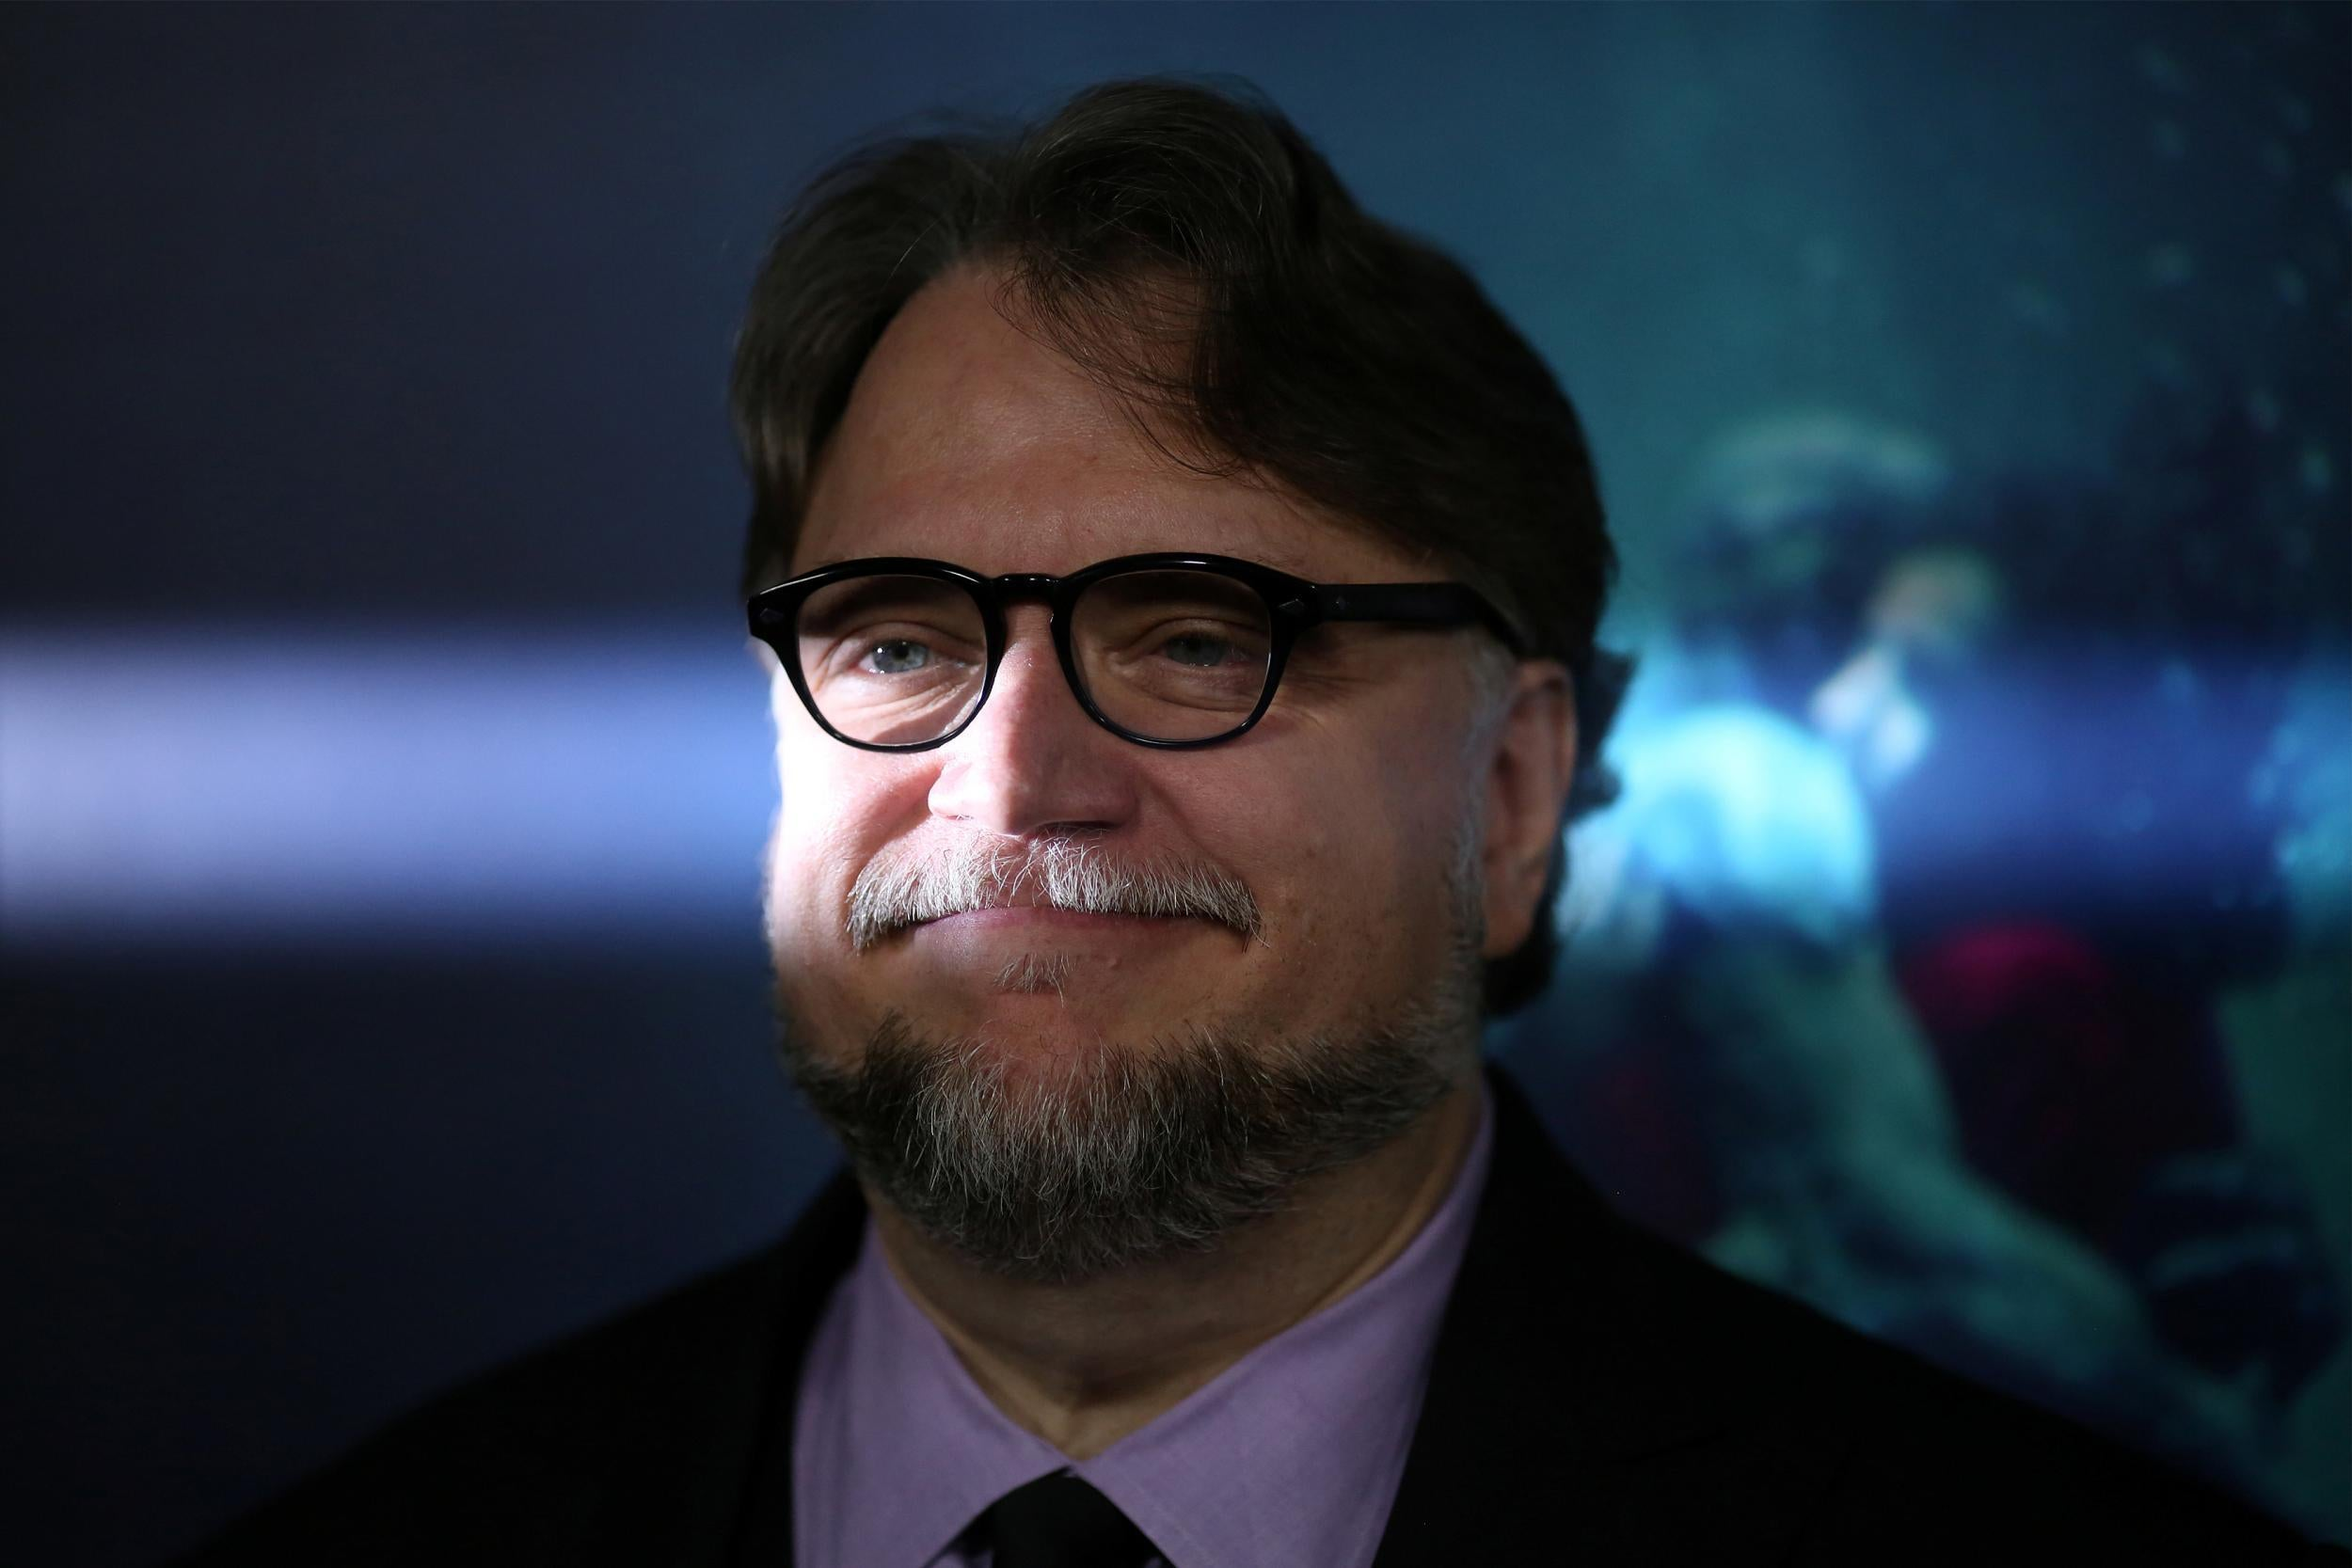 Guilhermo Del Toro with guillermo del toro interview: 'i think adversity is good – that is